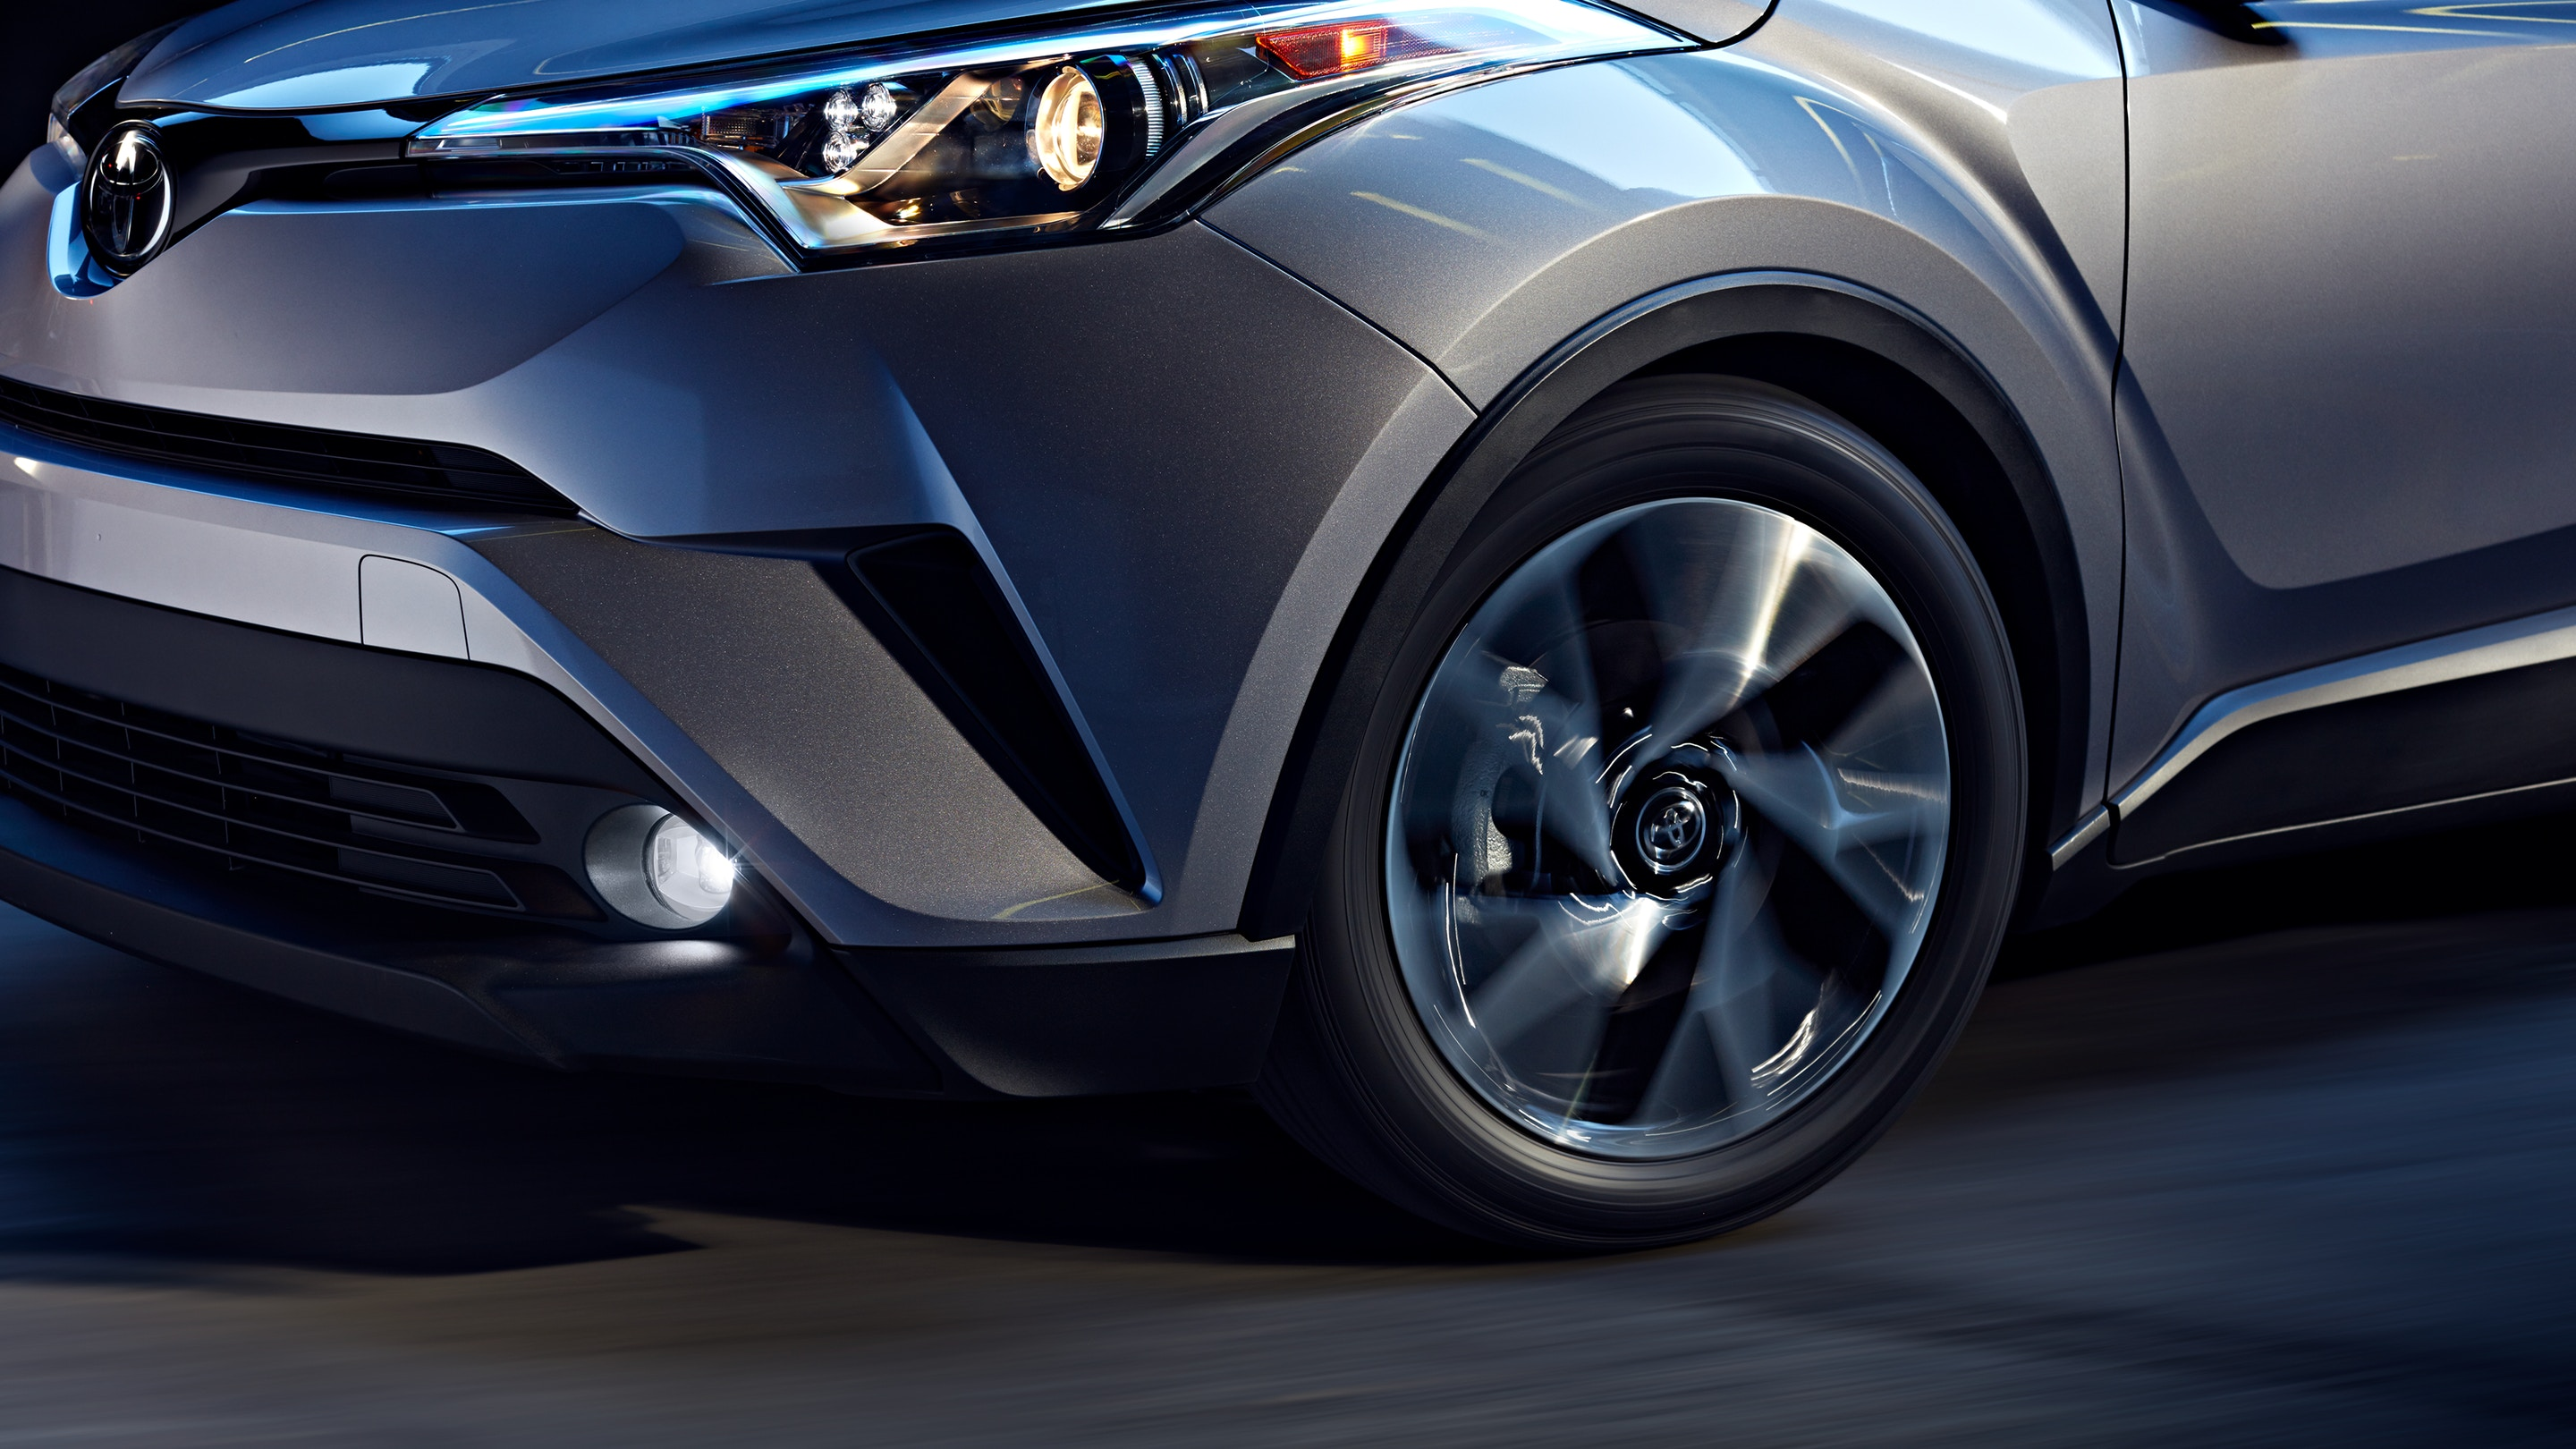 2019 Toyota C-HR for Sale near Raytown, MO